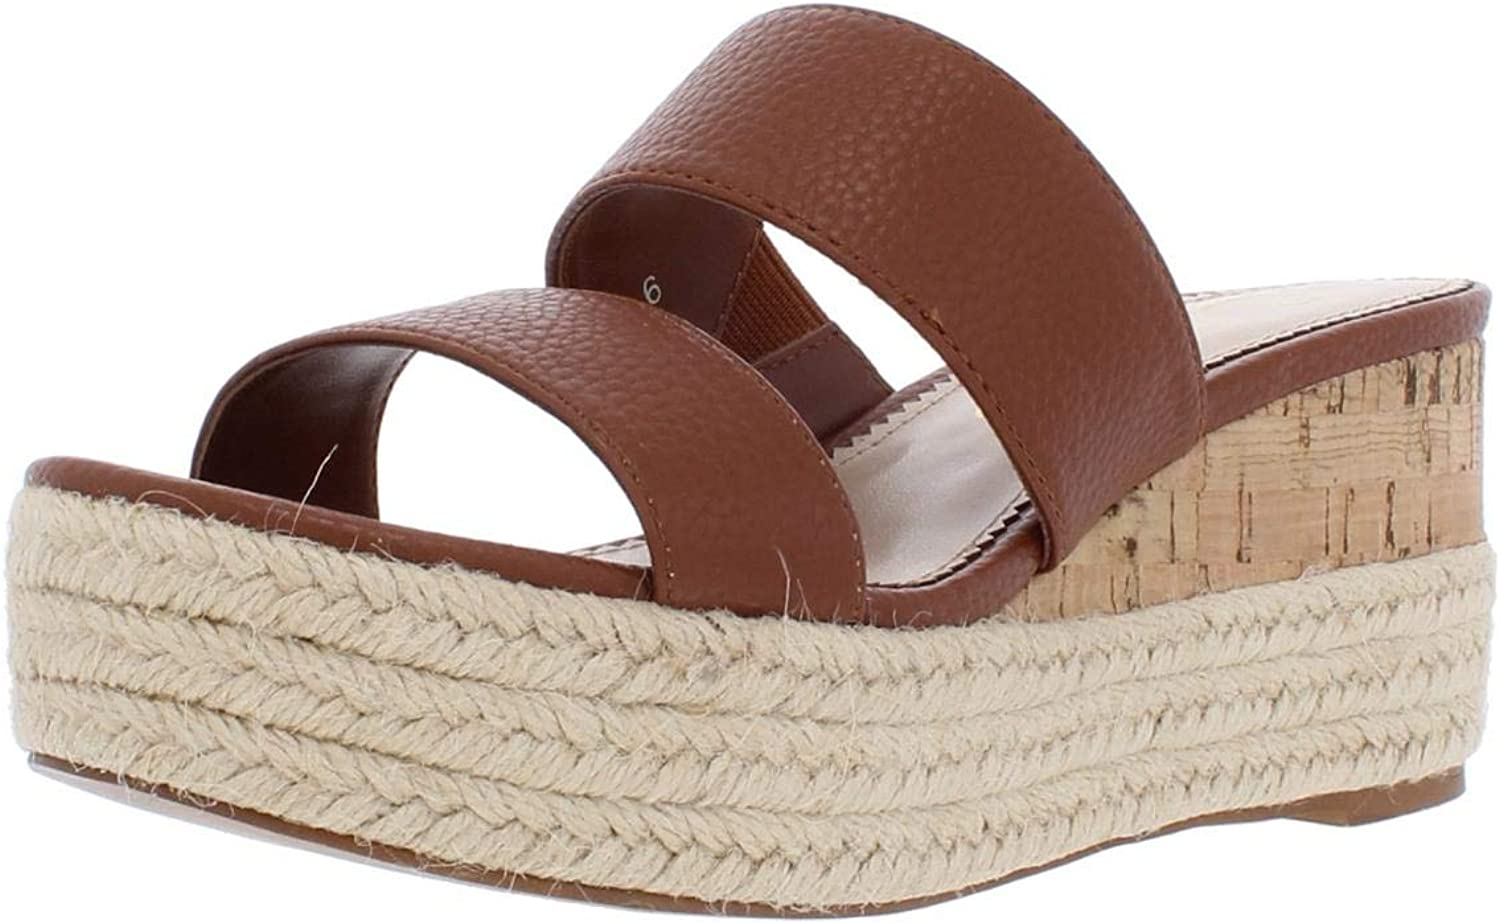 Callisto of California Womens Foundation Faux Leather Espadrille Wedge Sandals